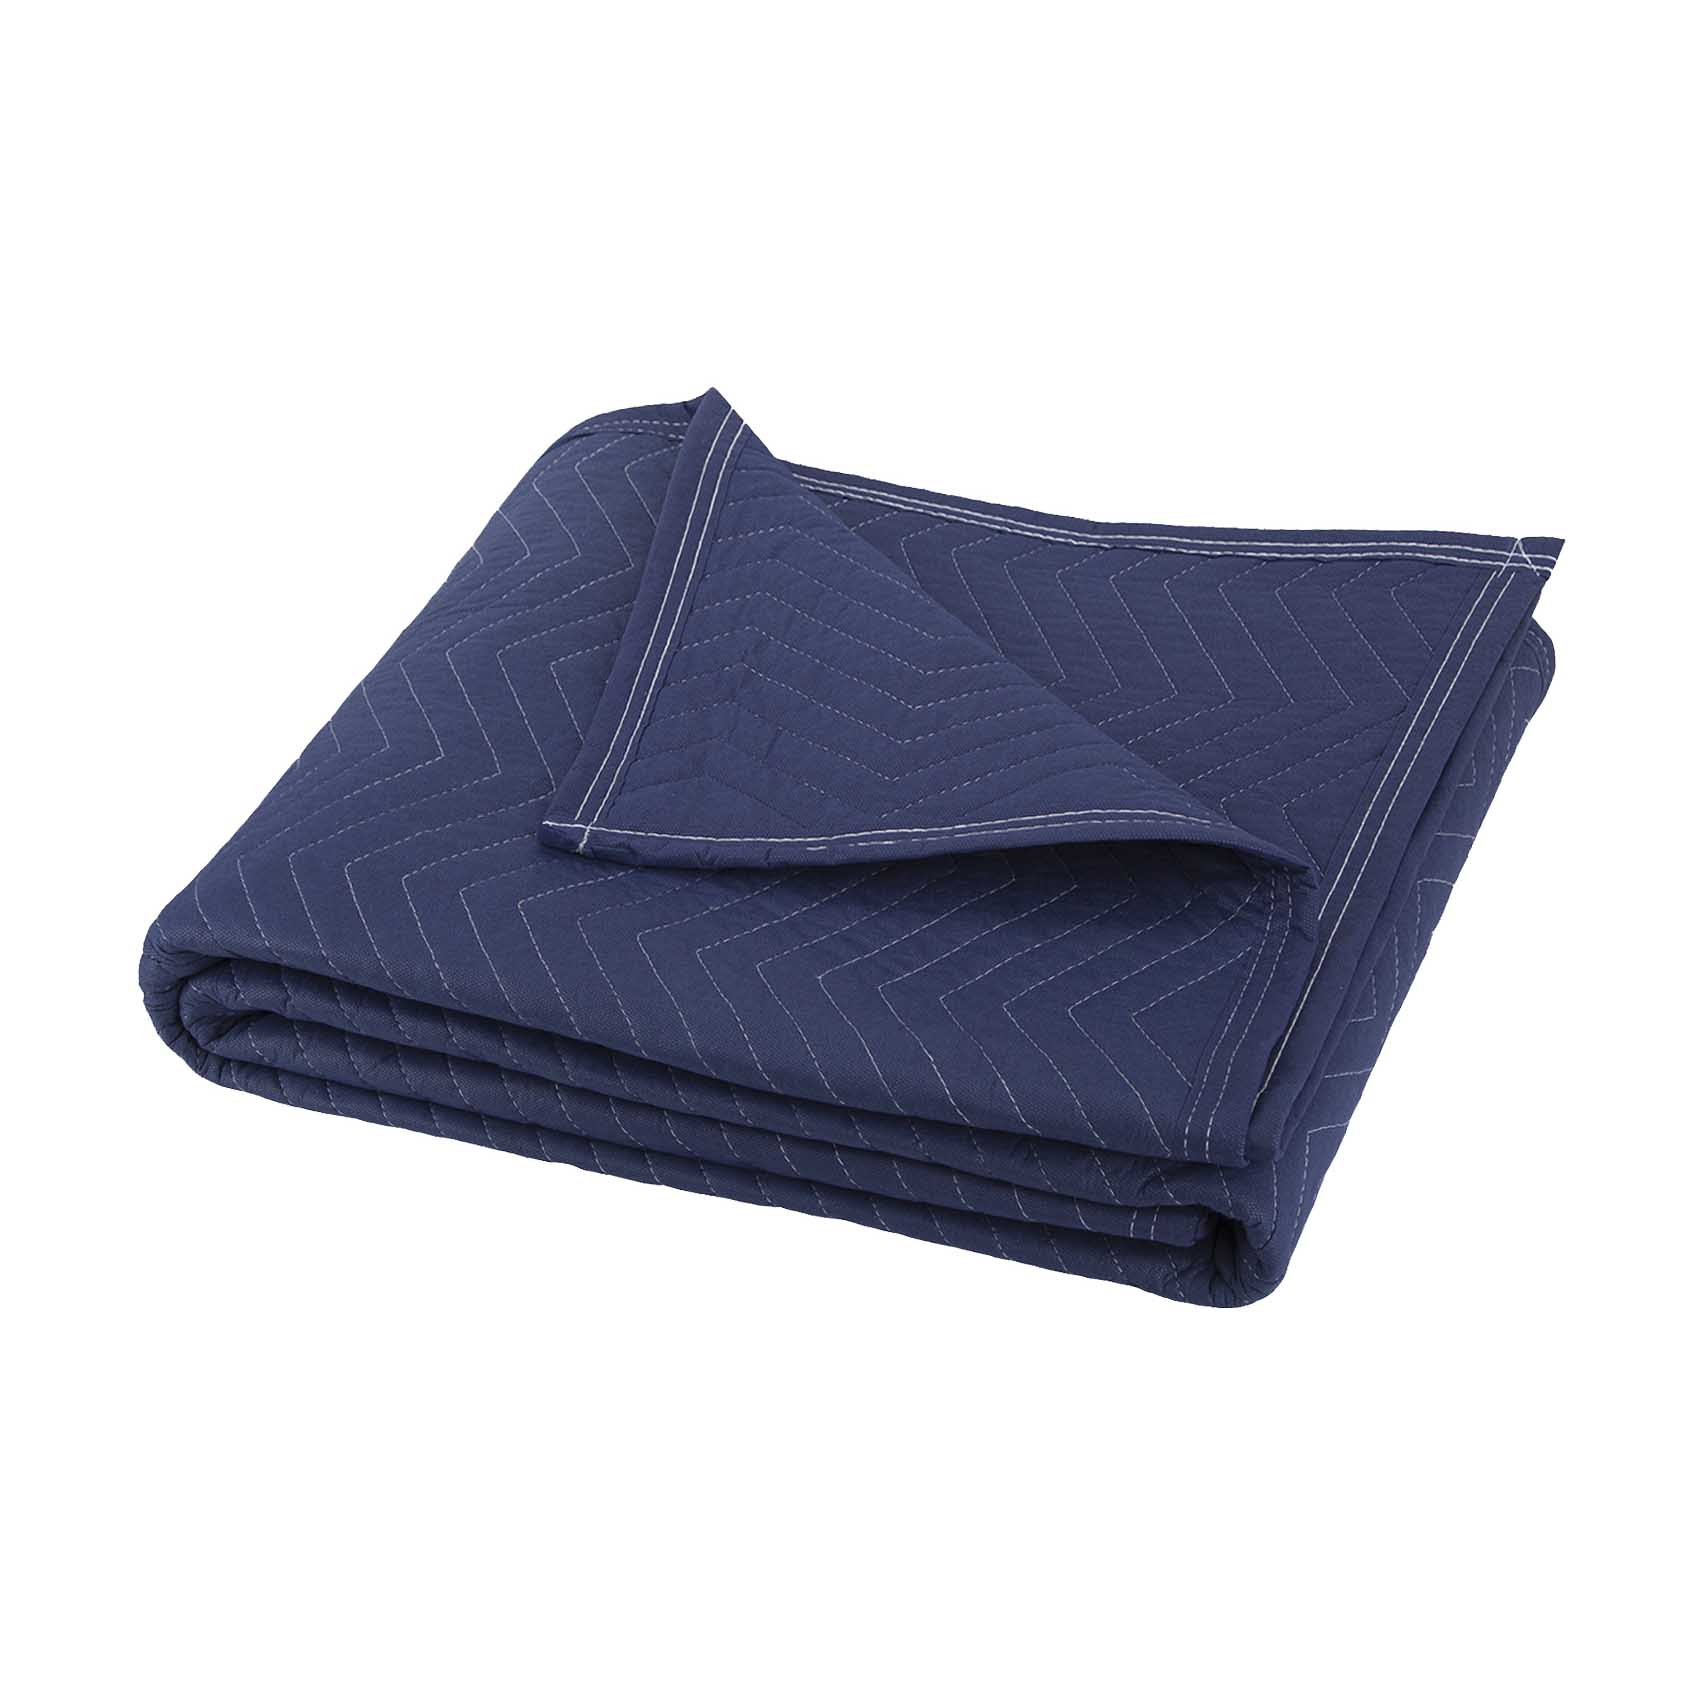 Picture of ProSource MT10101 Movers Blanket, 80 in L, 72 in W, Cotton/Polyester, Dark Blue/Light Blue